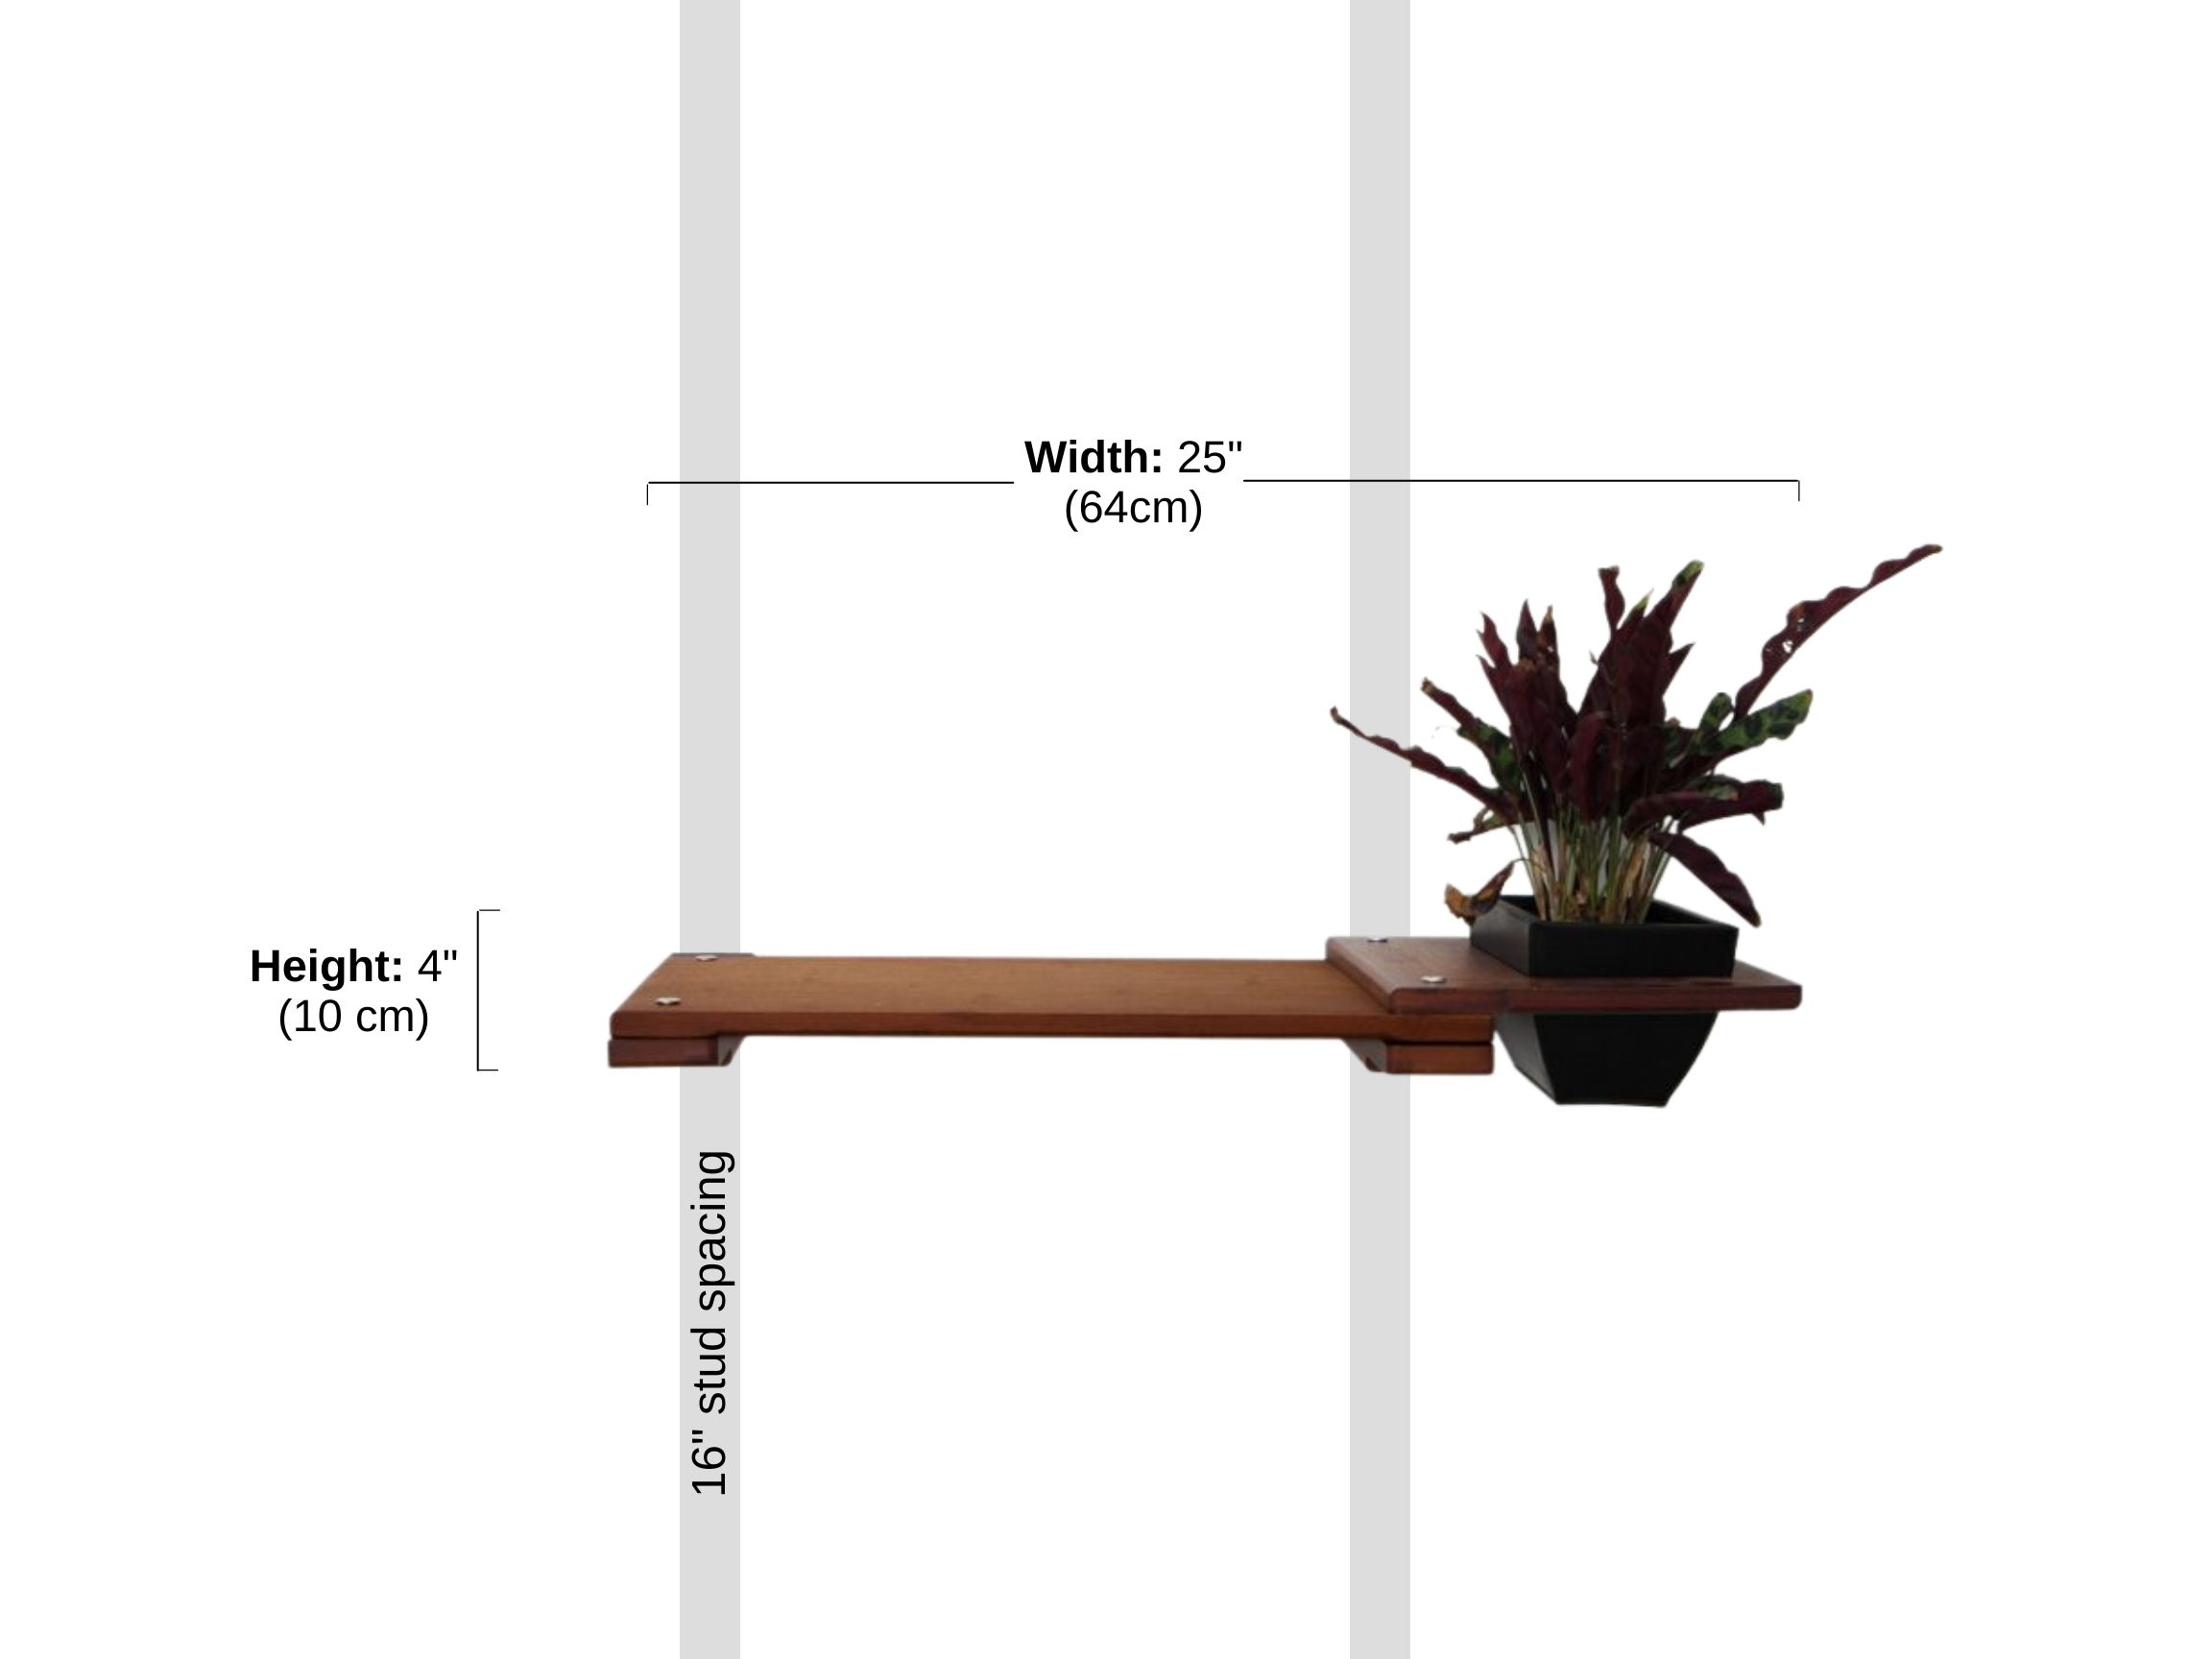 """Stud spacing and Dimensions of 18"""" Shelf with Planter"""